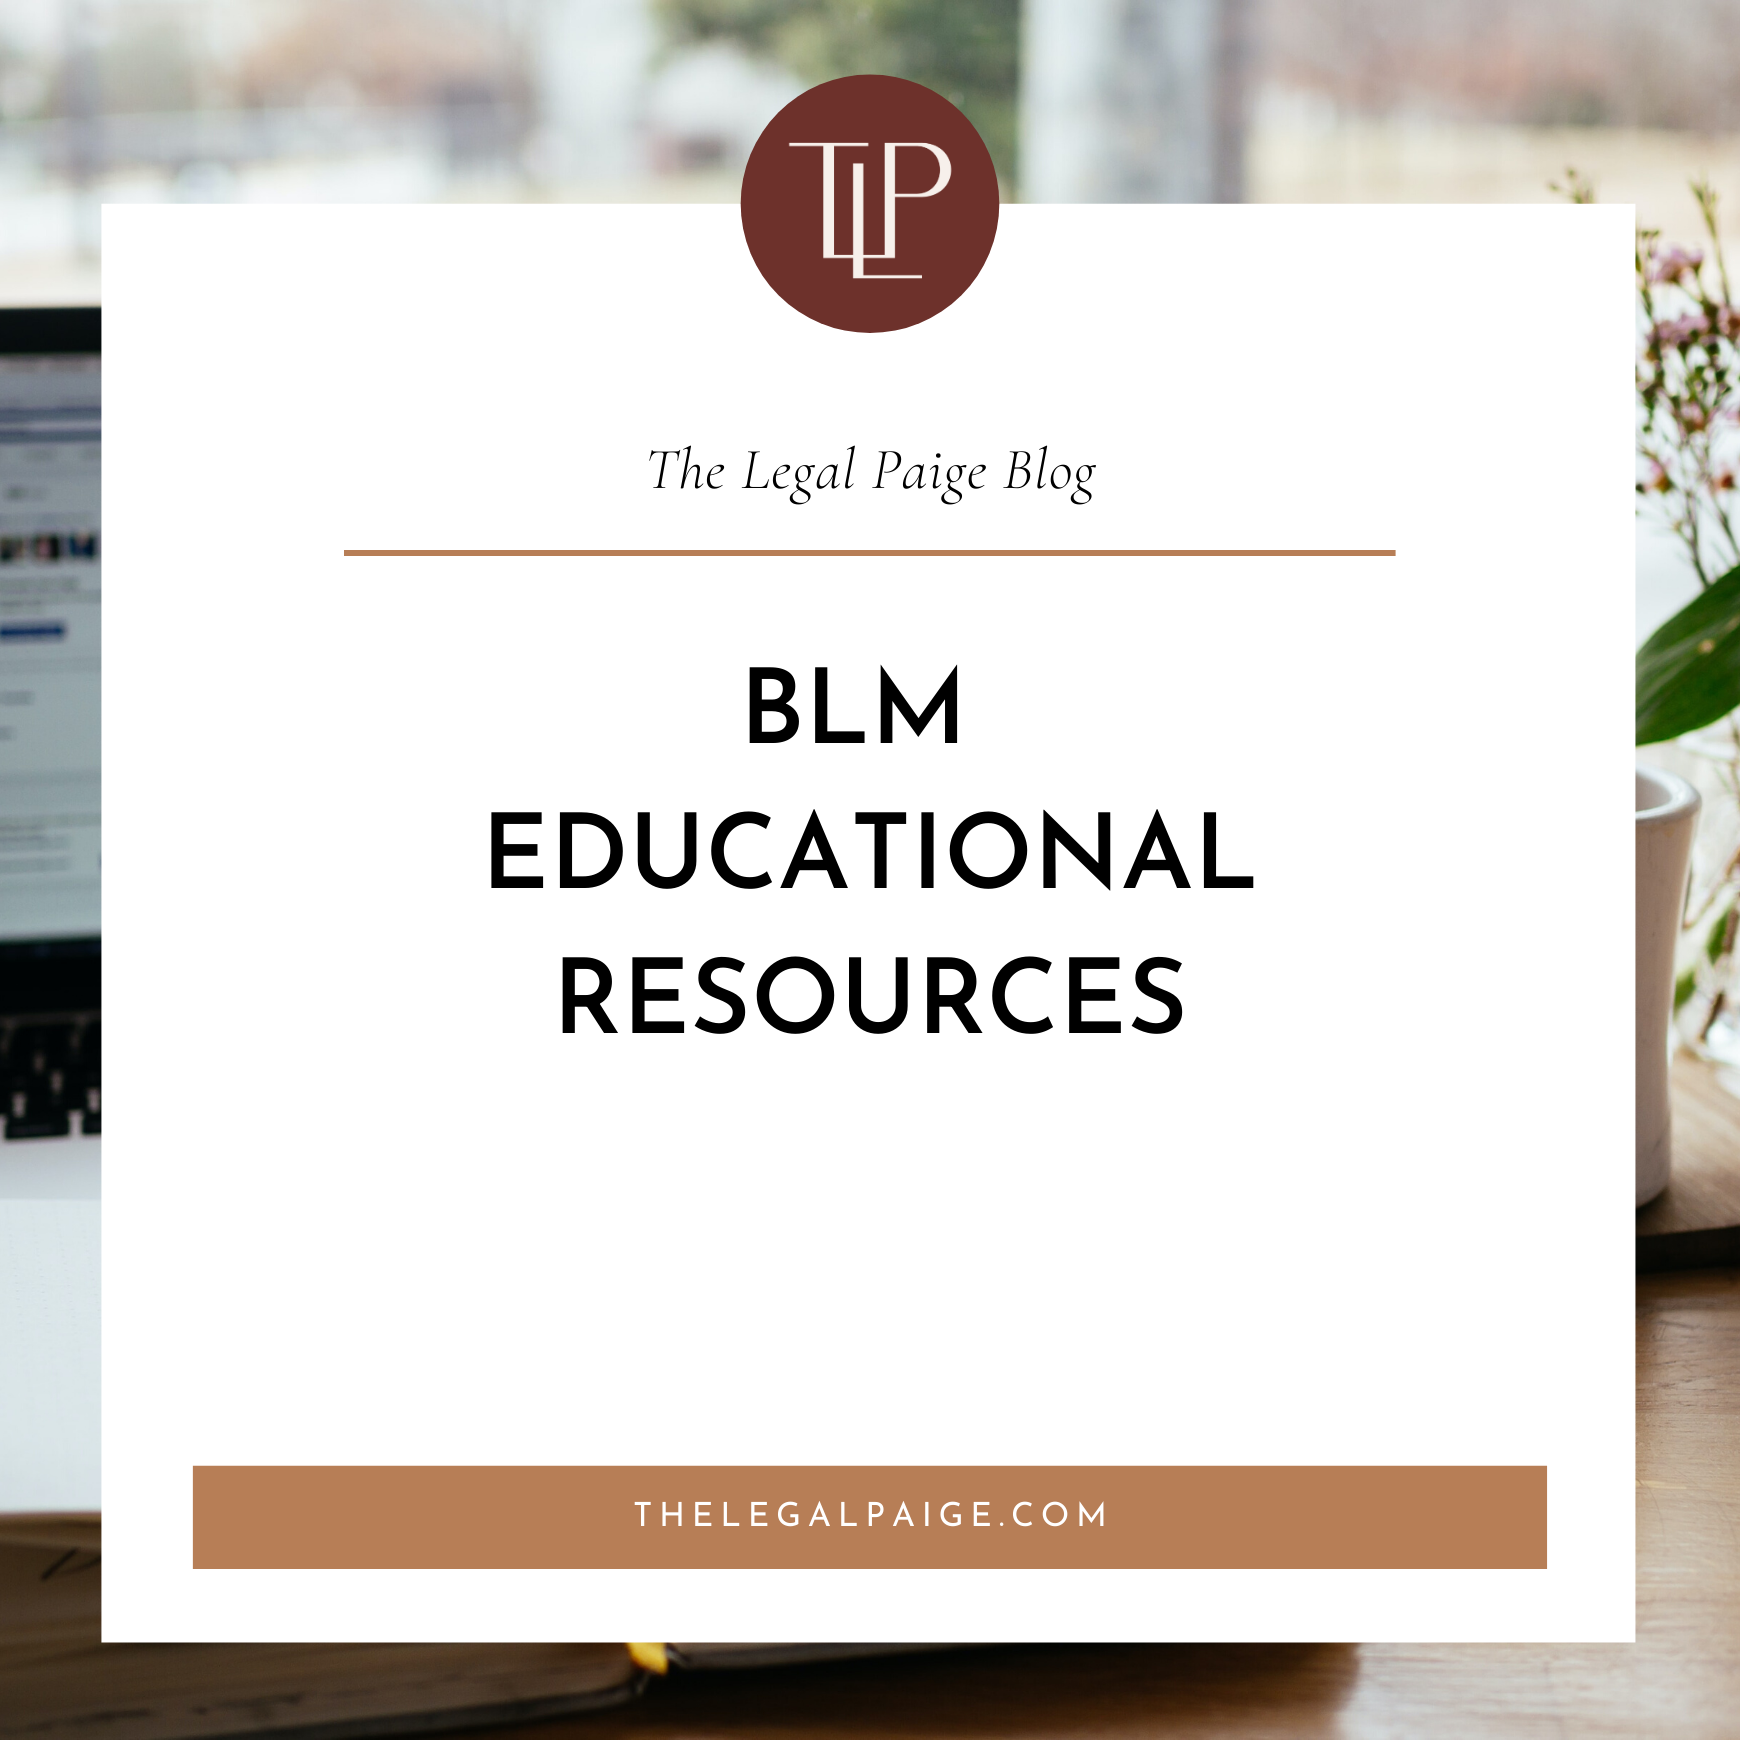 BLM Educational Resources